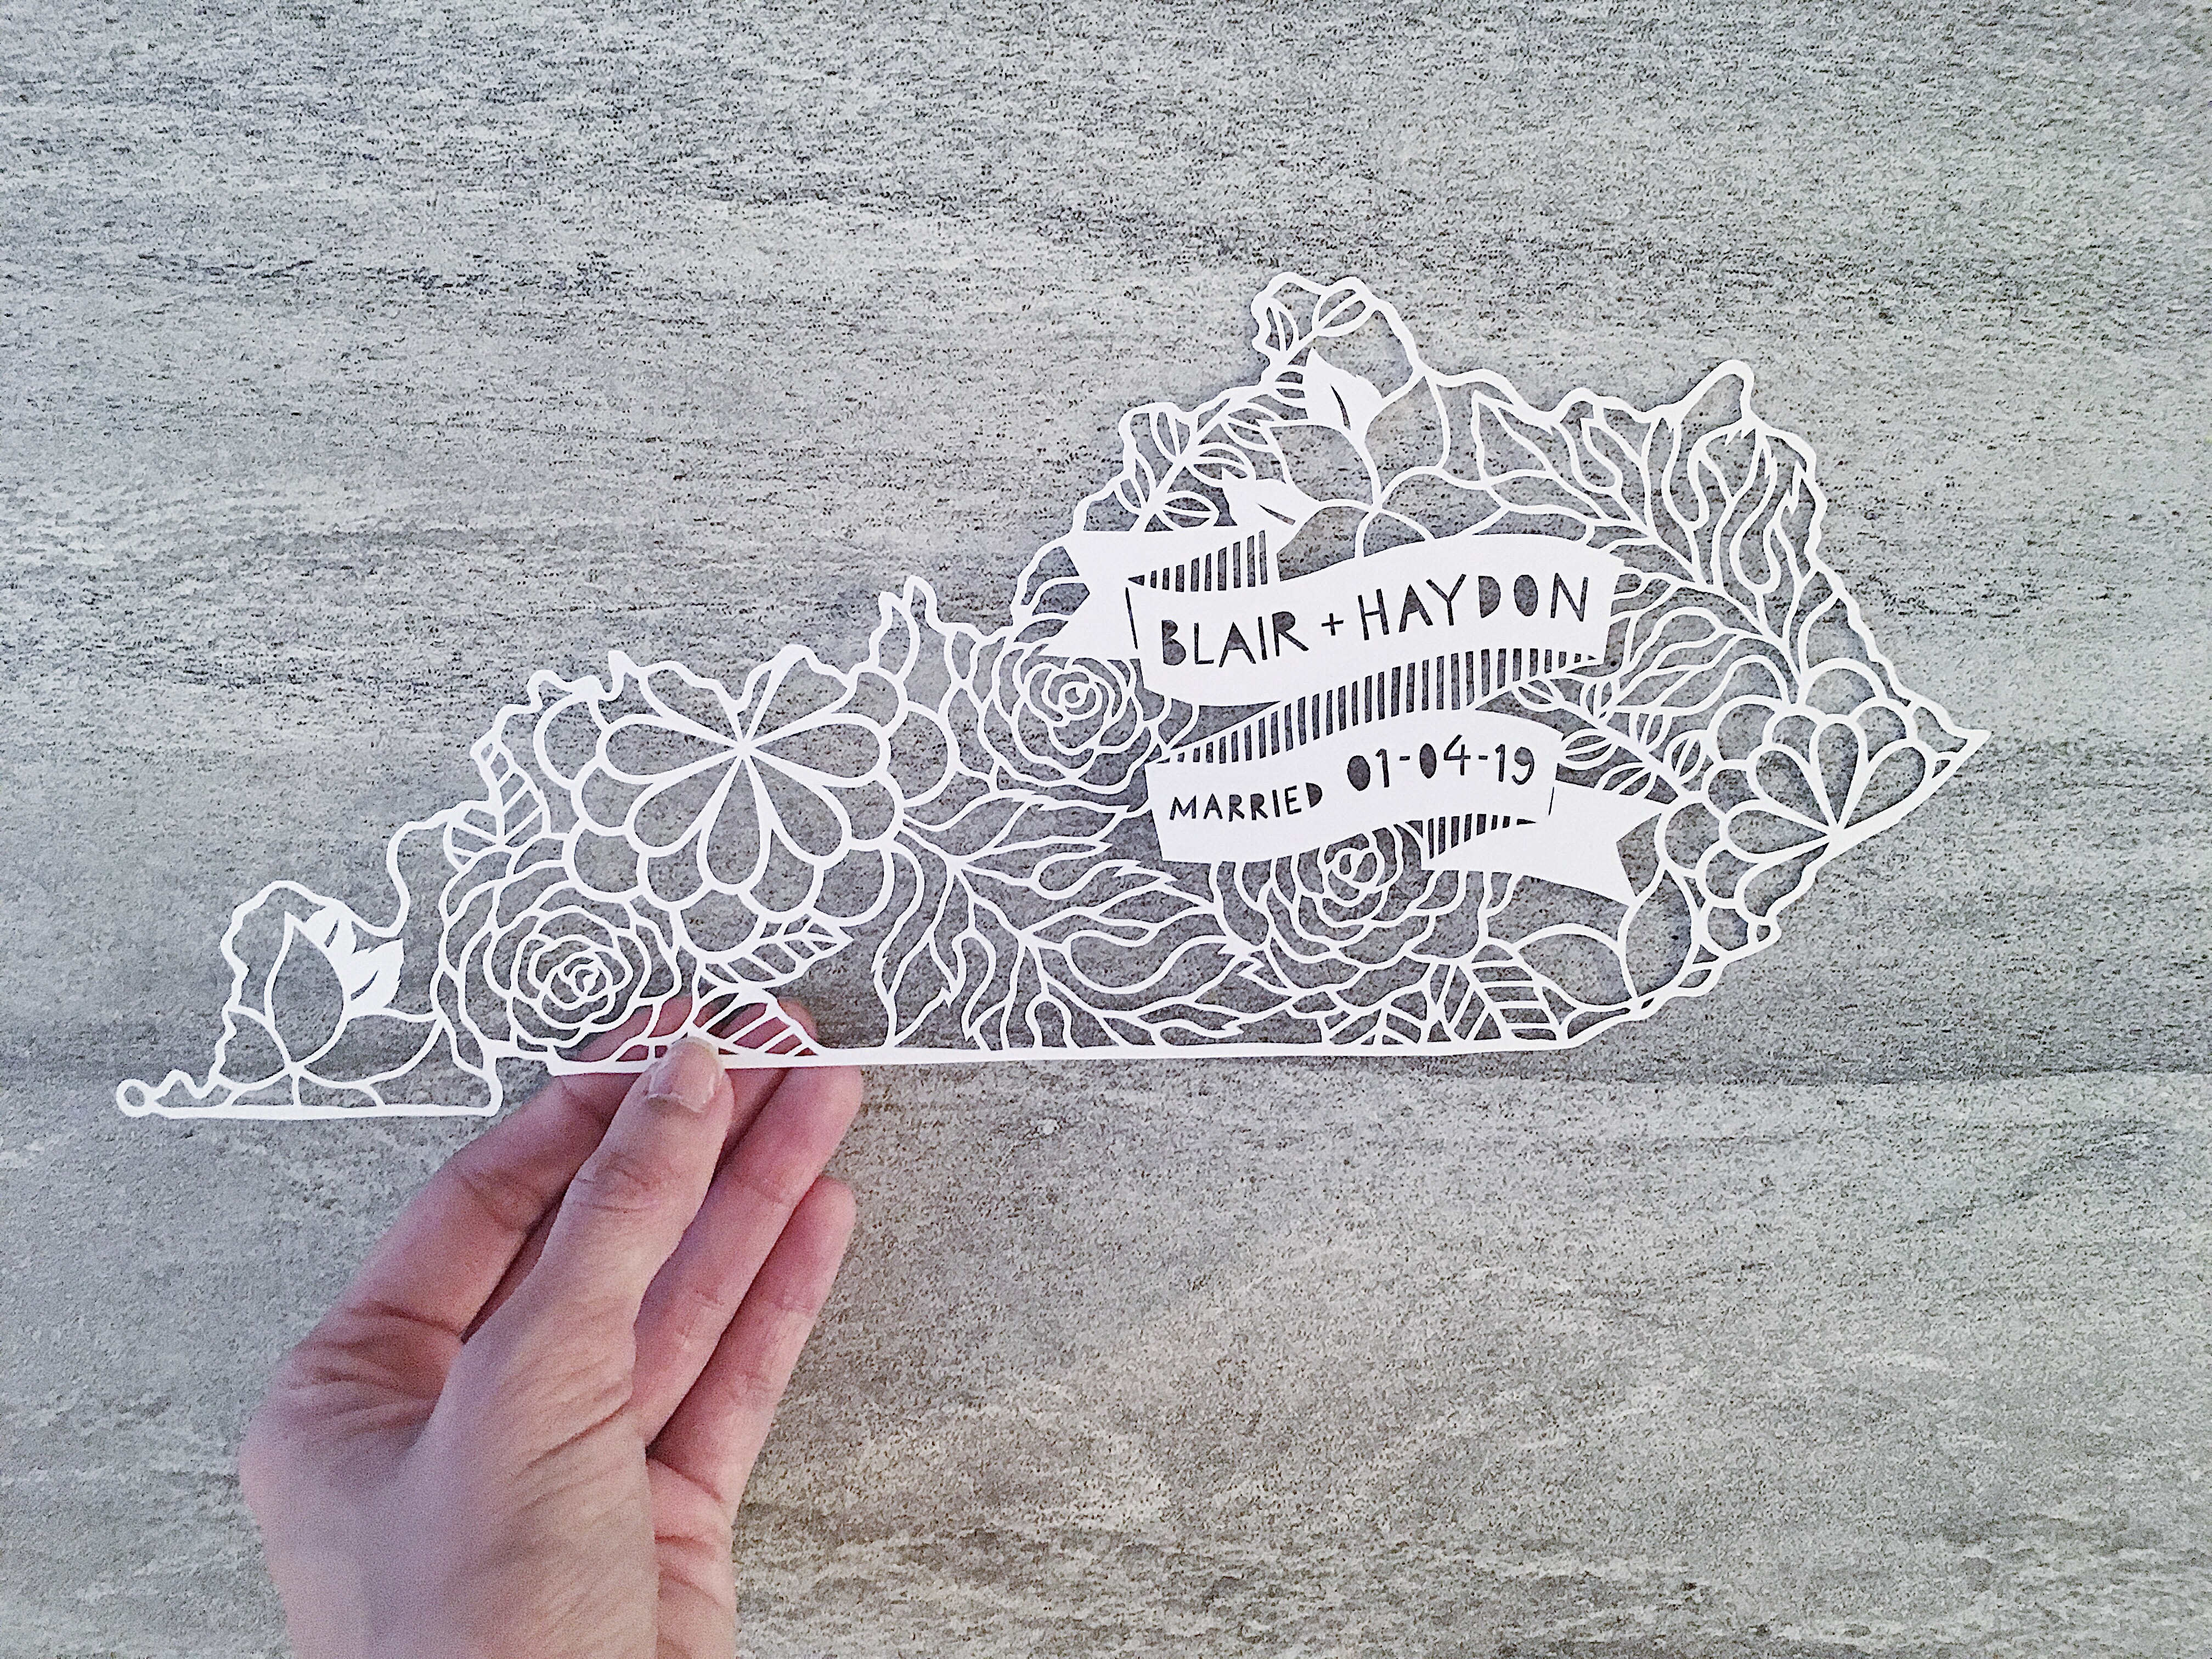 scherenschnitte-kentucky-papercut-map-wedding-gift-engagement-gift-papercutting-art (9)